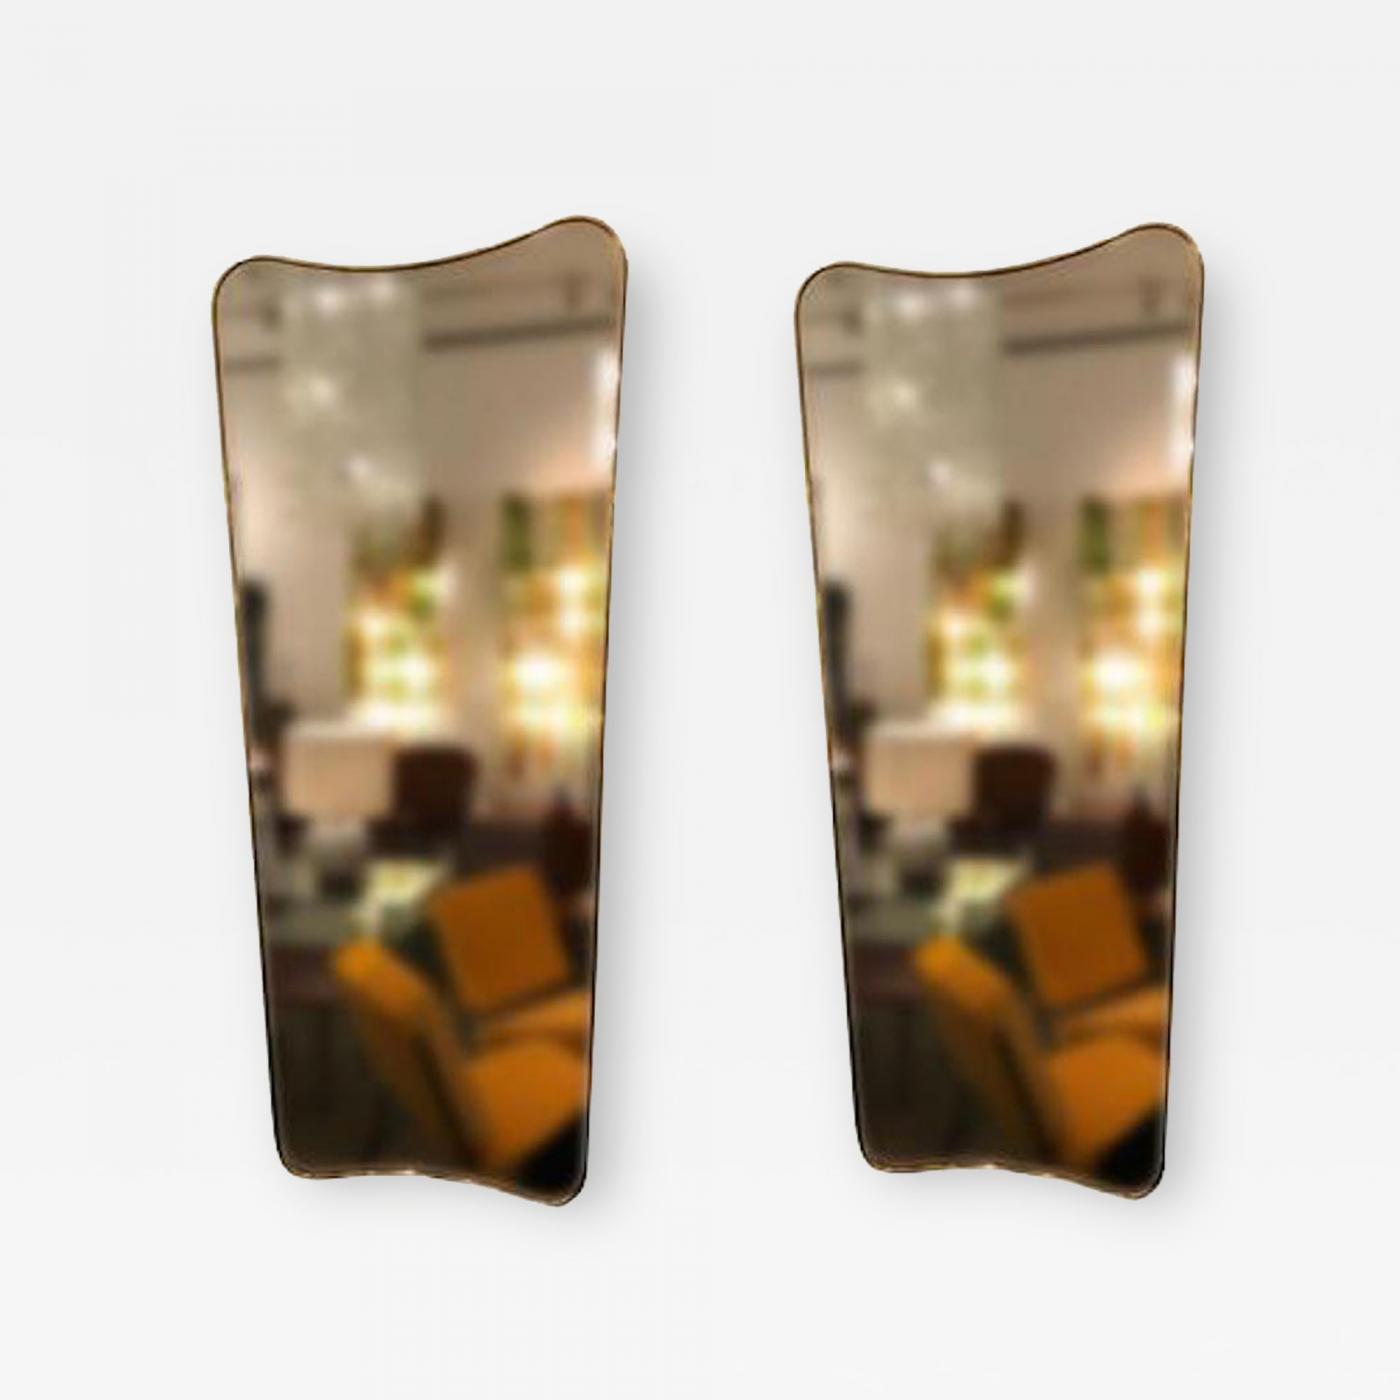 0901b680da9f8 Pair of Large Scaled Mid-Century Wall Mirrors in Brass in the style of Gio  Ponti